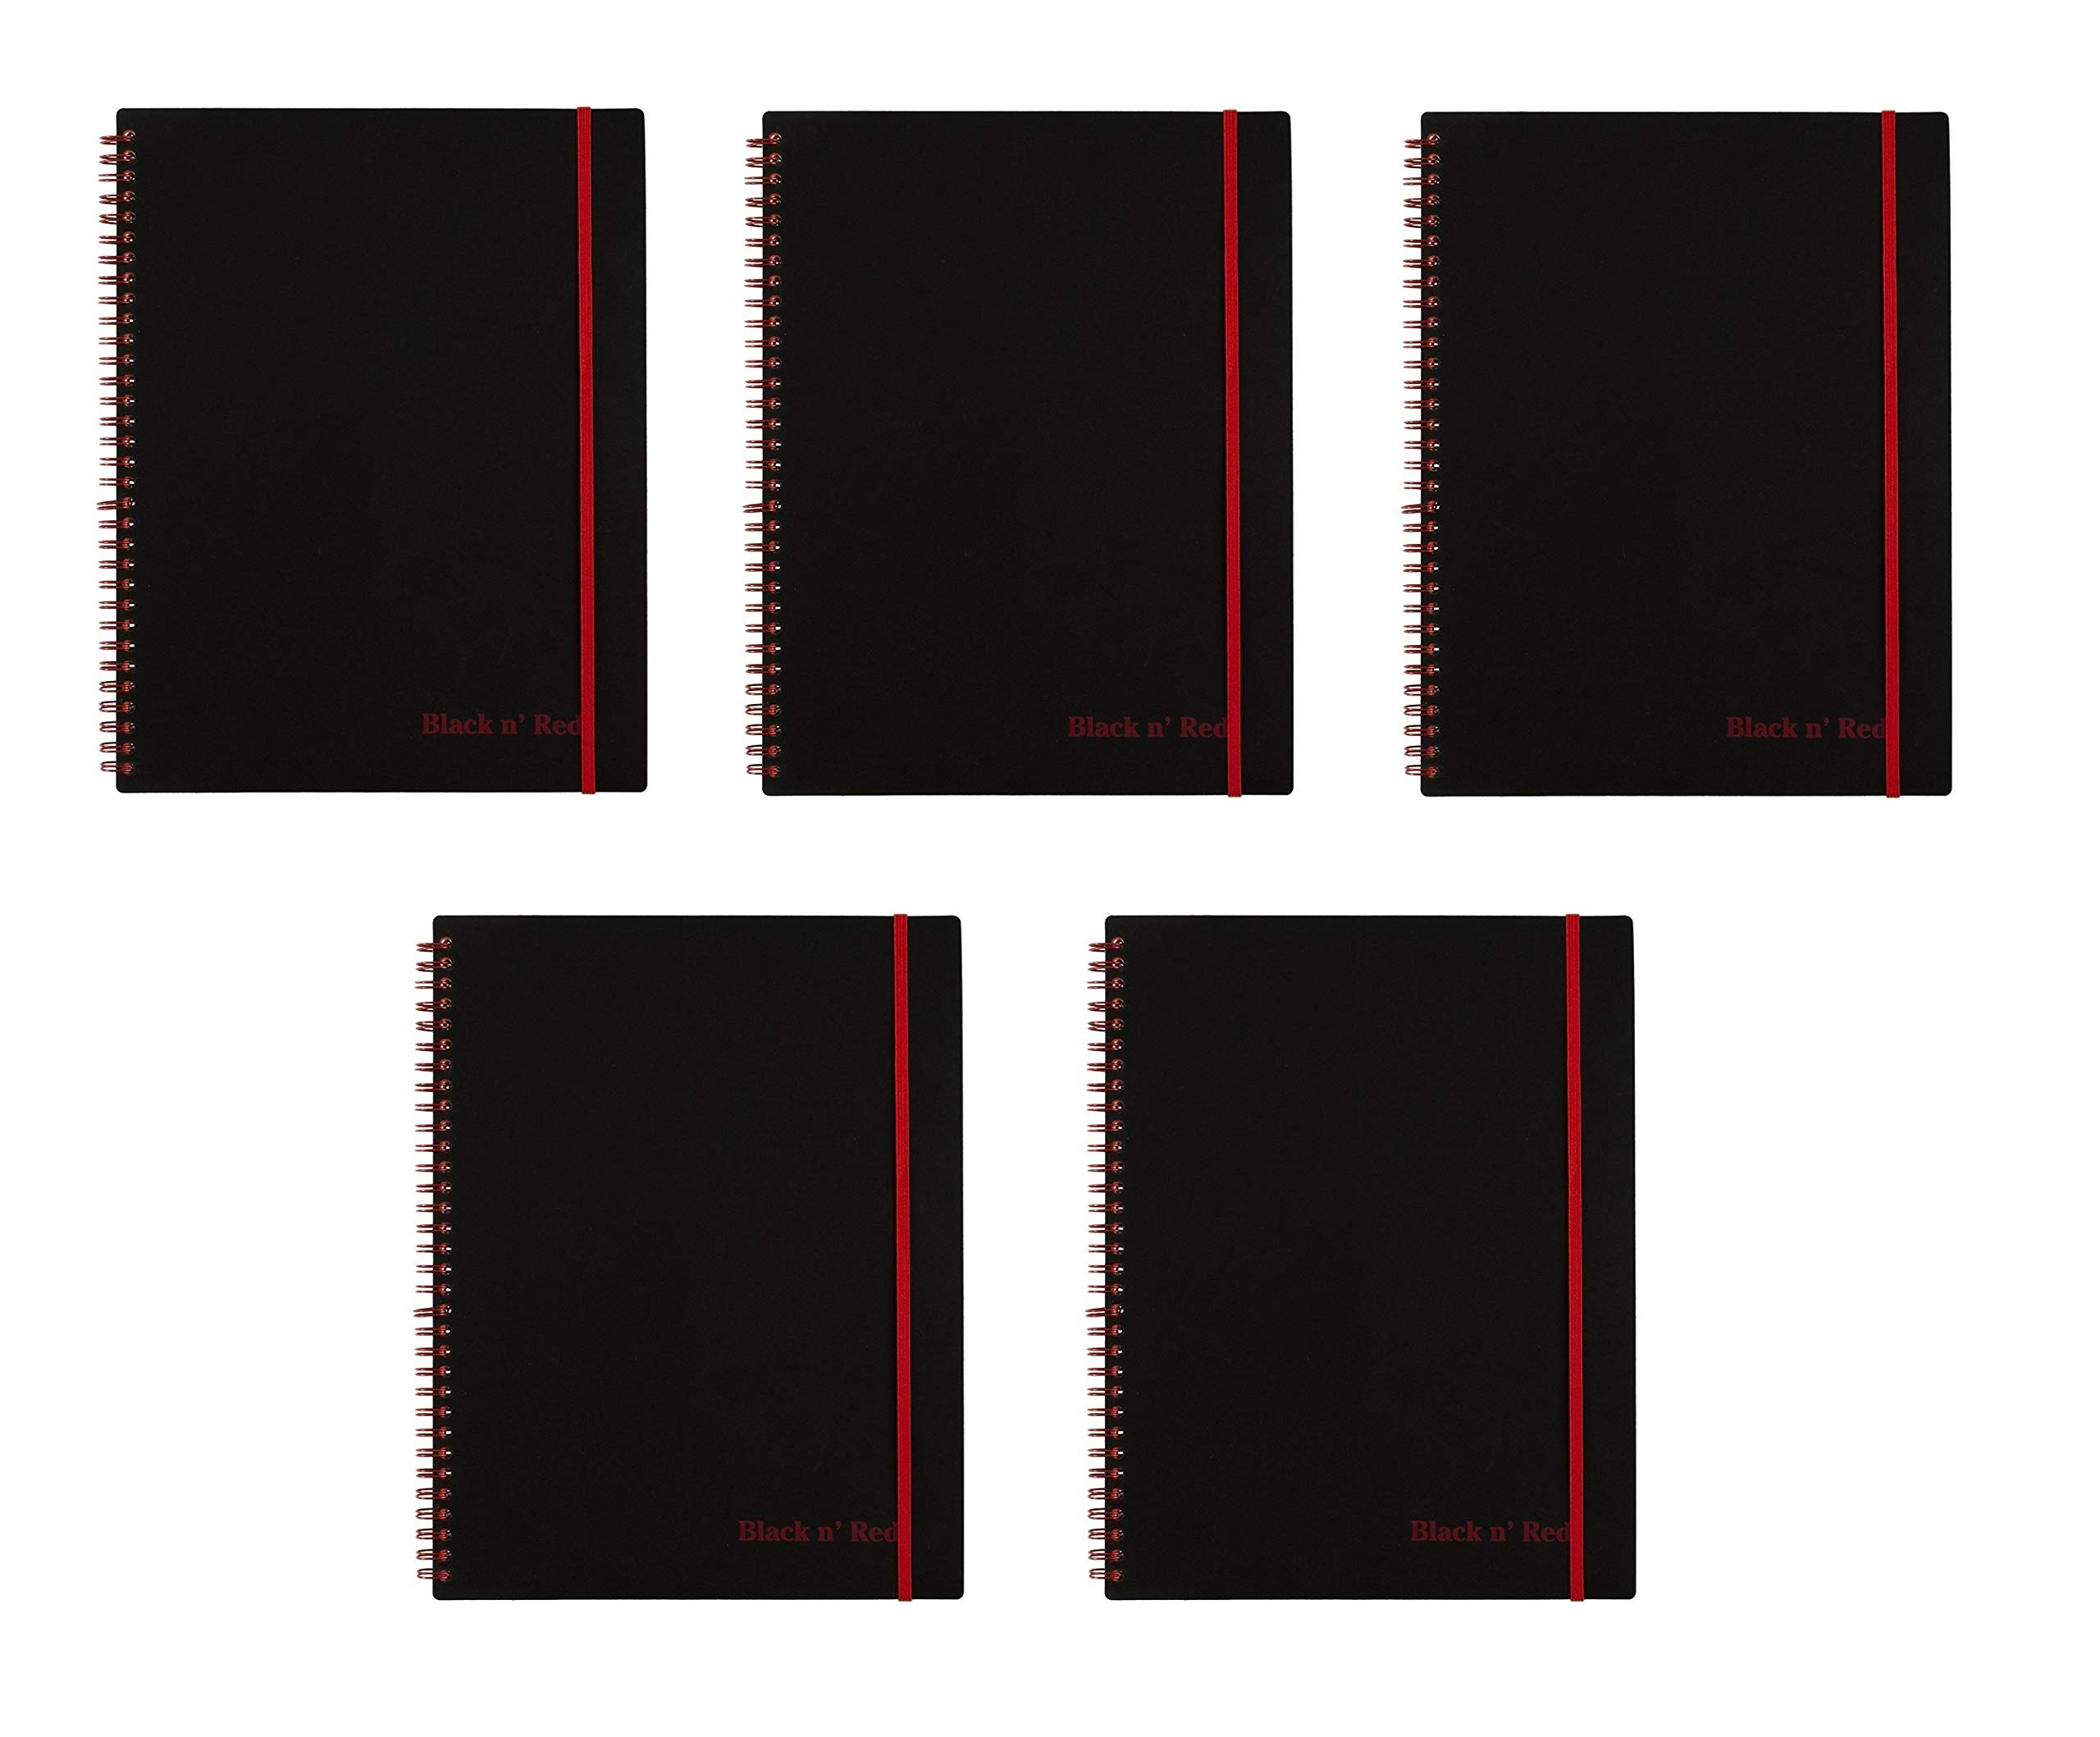 Black n' Red Twin Wire Poly Cover Notebook, 11'' x 8-1/2'', Black/Red, 70 Ruled Sheets. Sold as 5 Pack (K66652)